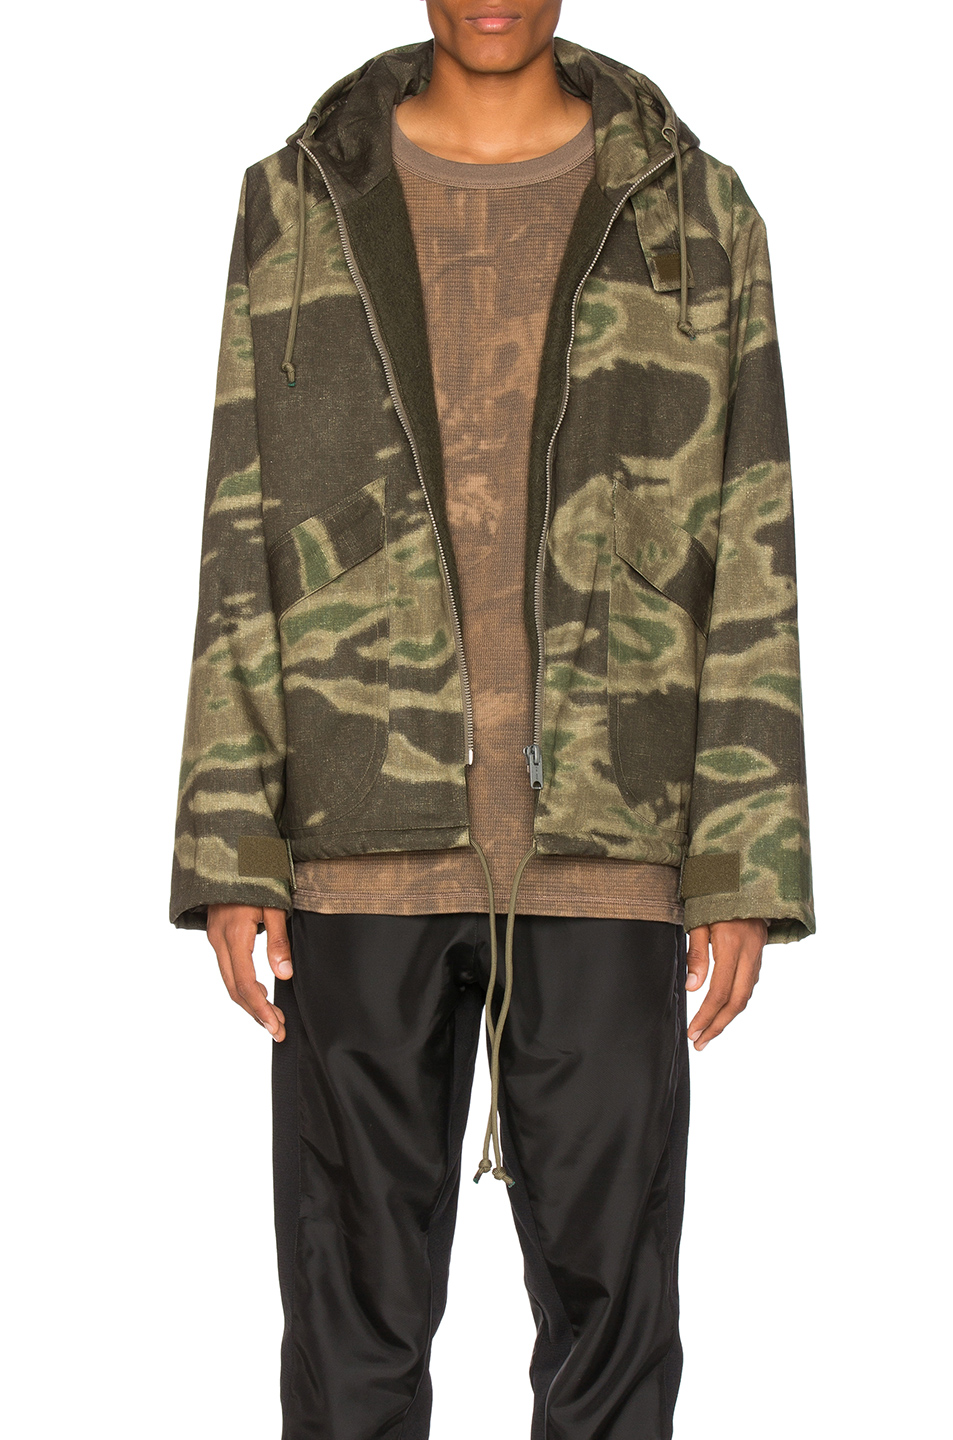 YEEZY Season 3 Printed Anorak in Abstract,Green